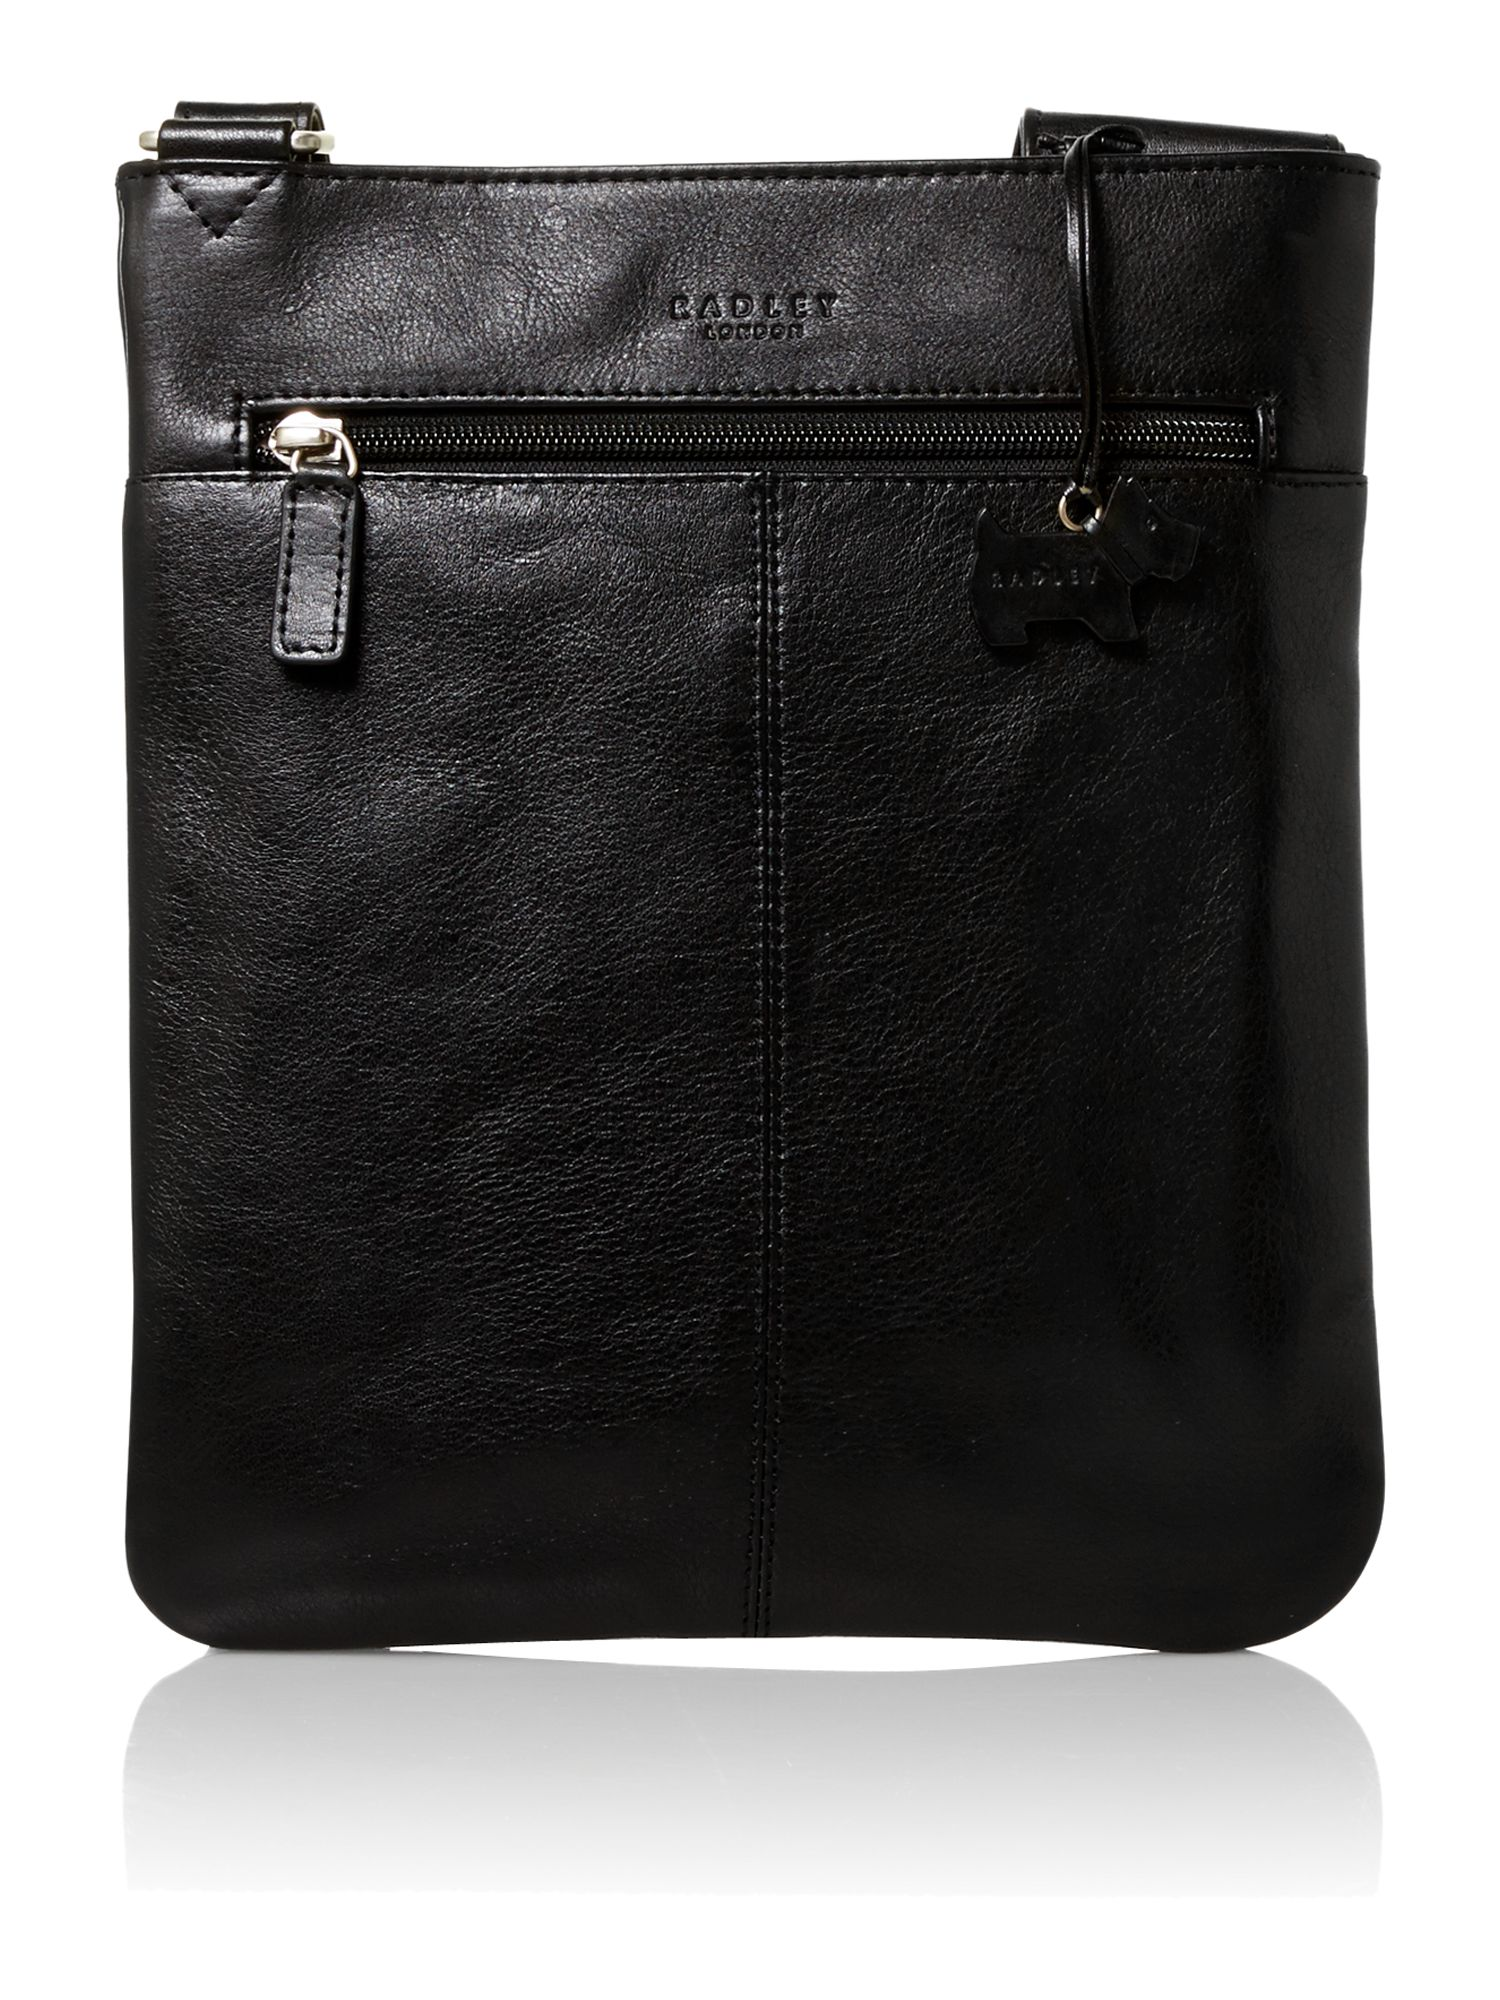 Finch black medium crossbody leather bag